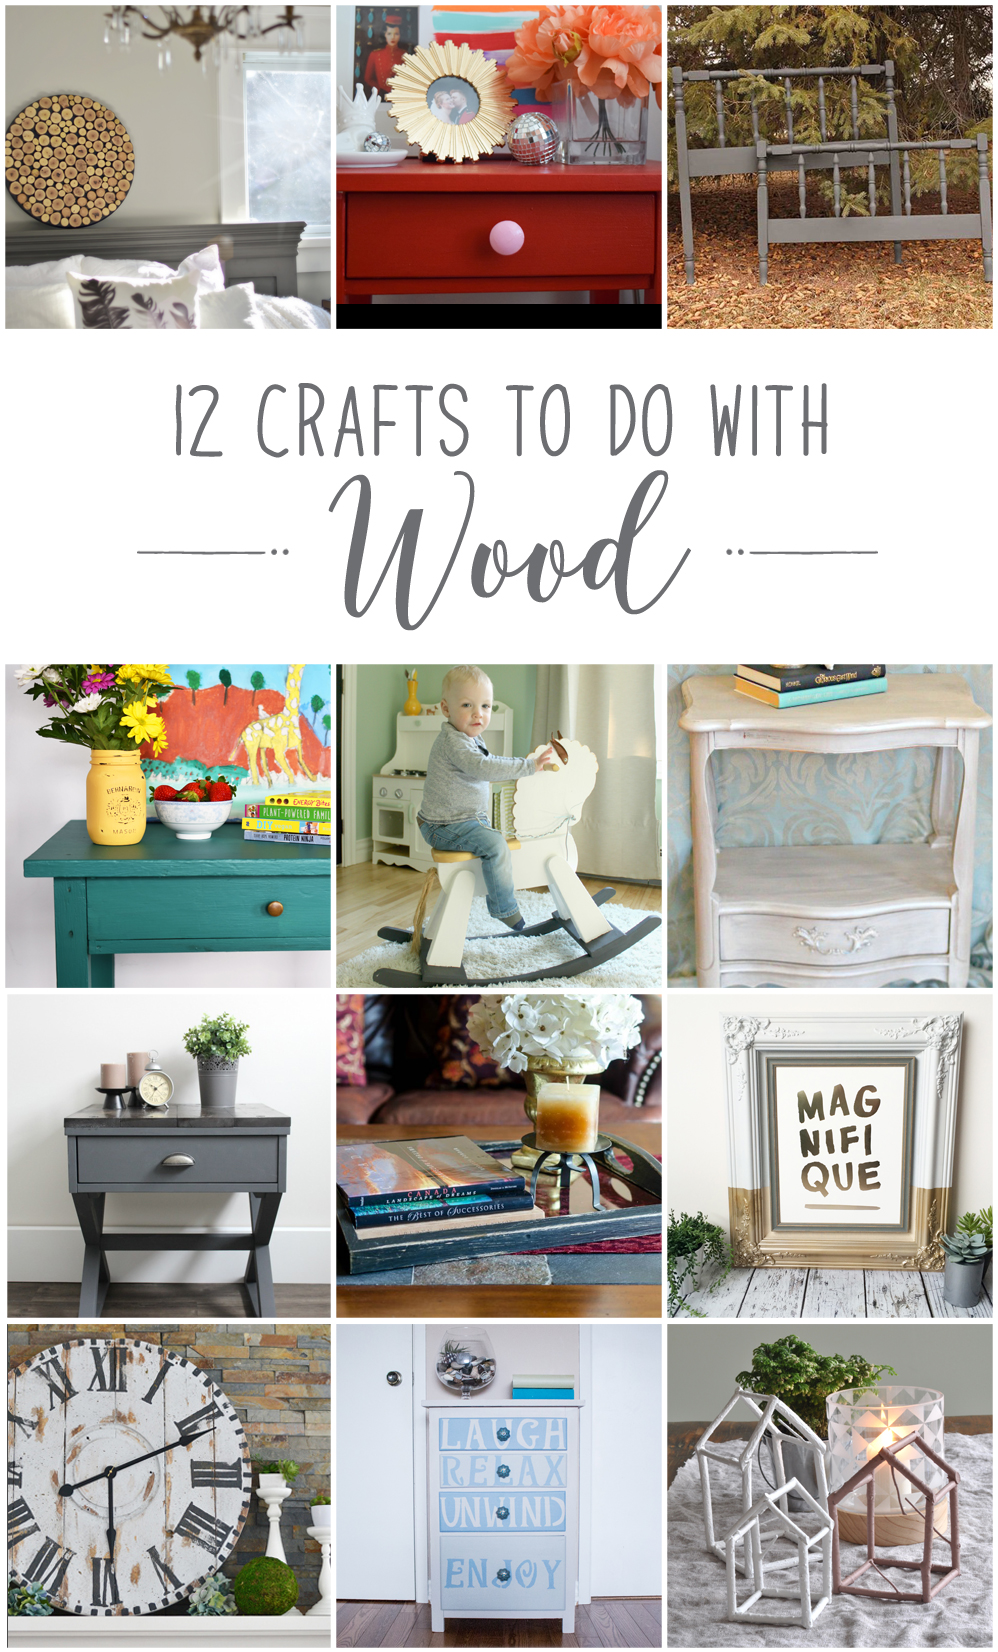 12 Great projects to do with wood #12MonthsofDIY